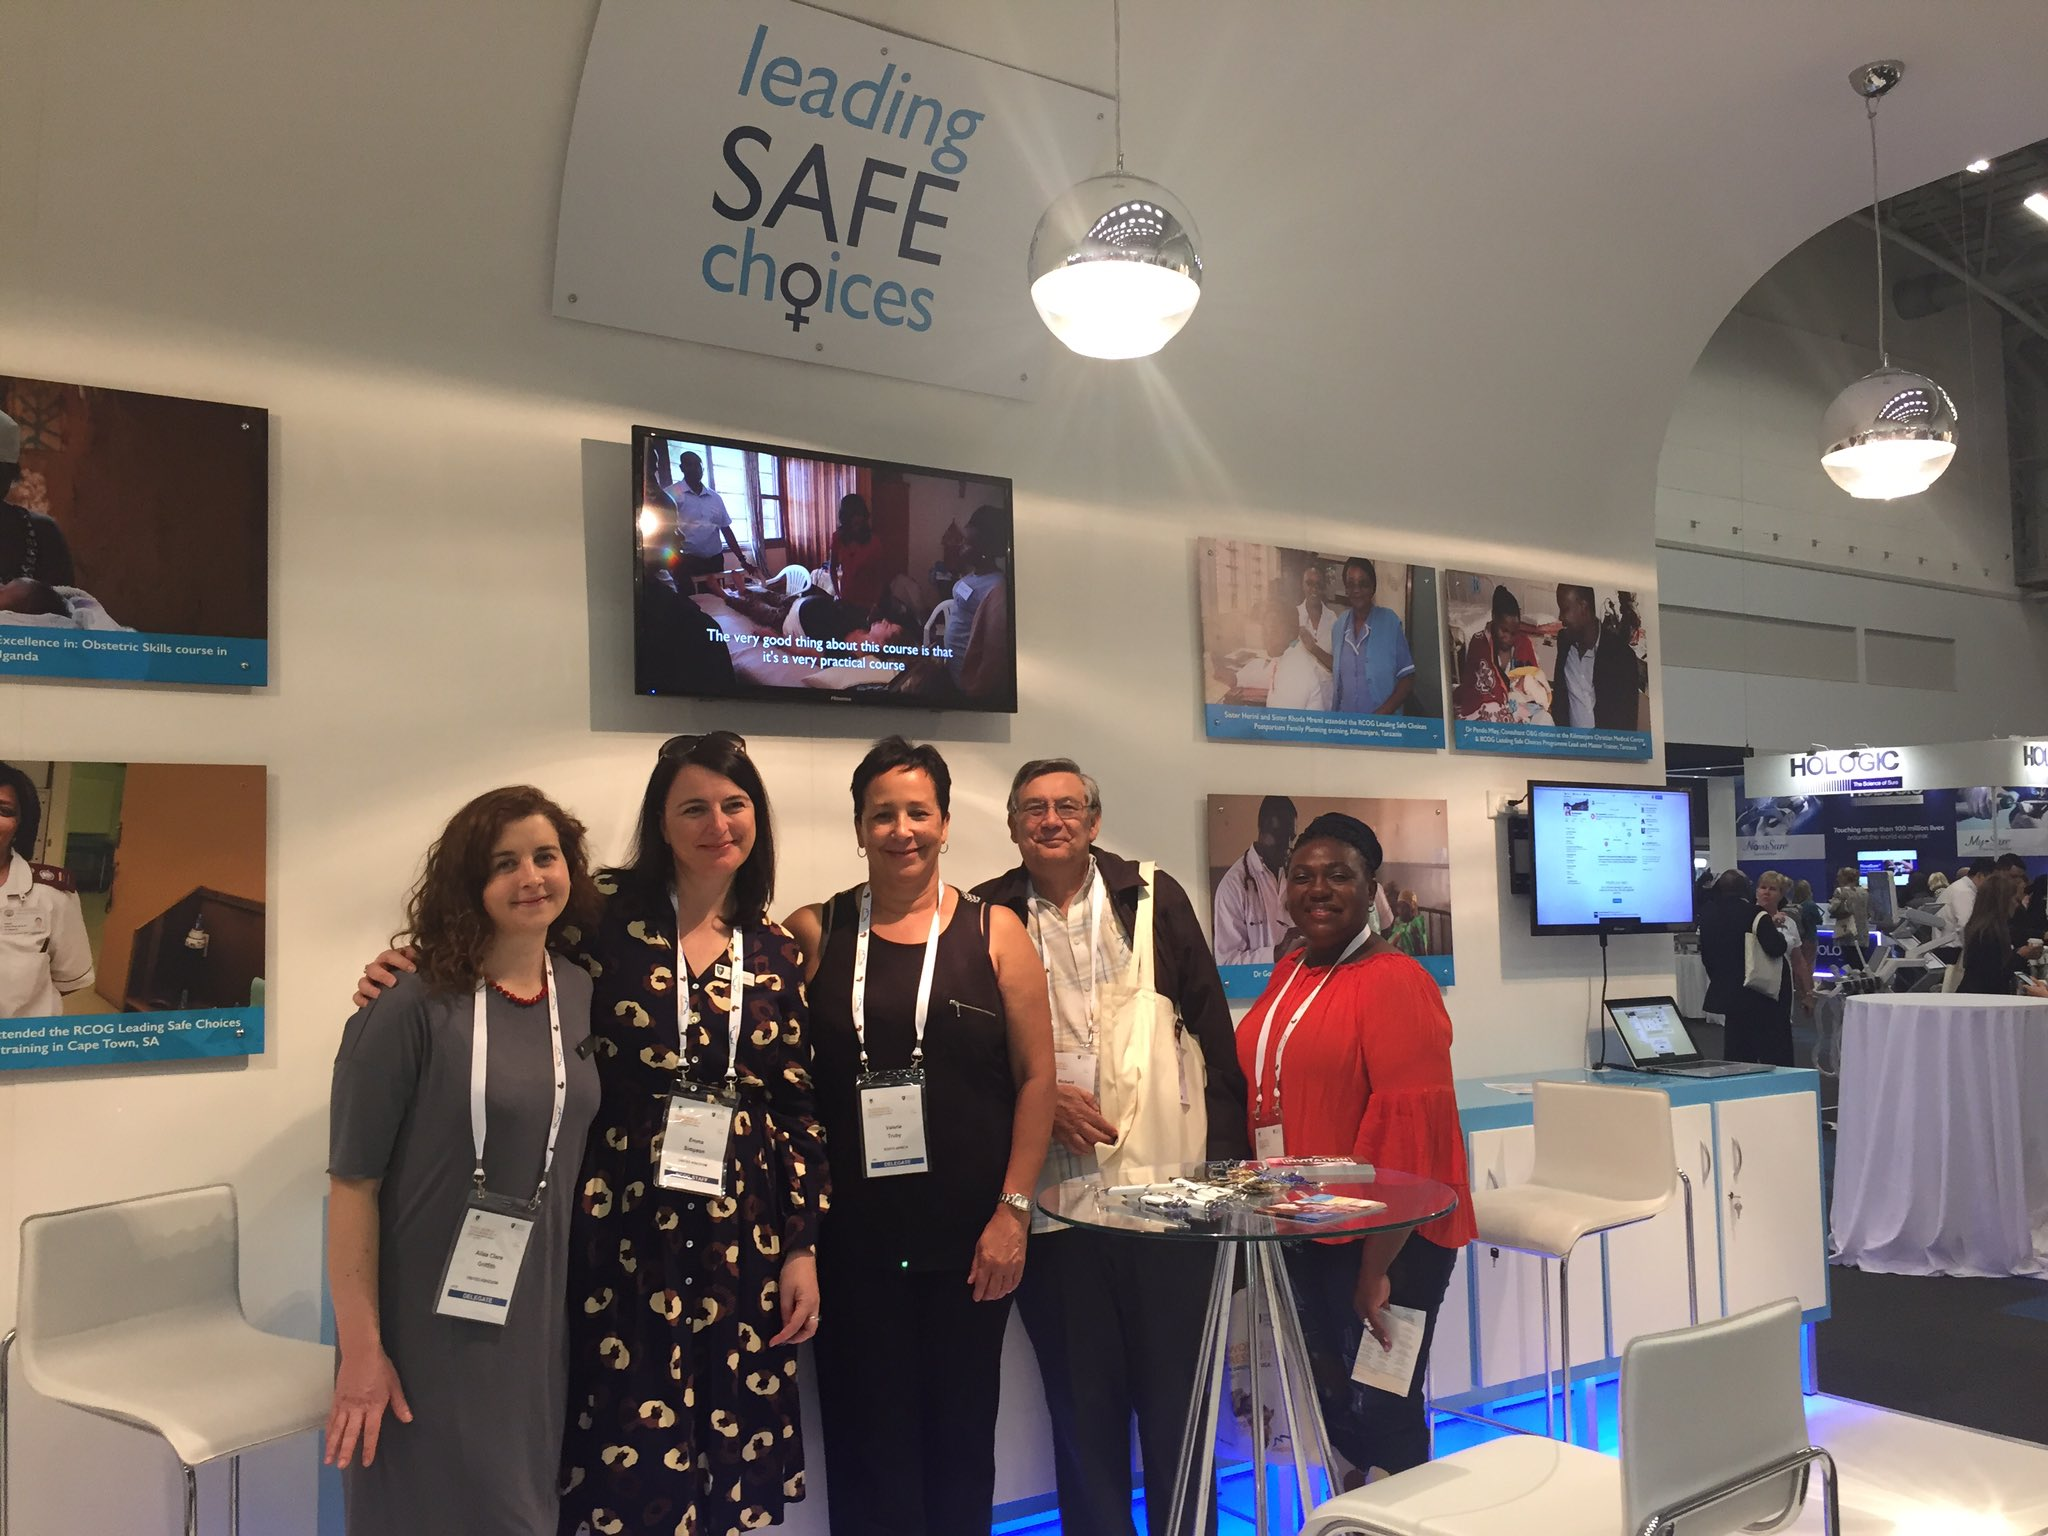 Come and see us at the Centre for Women's Global Health Stand in the Exhibition Centre #rcog2017 https://t.co/TtH3dKzCRE